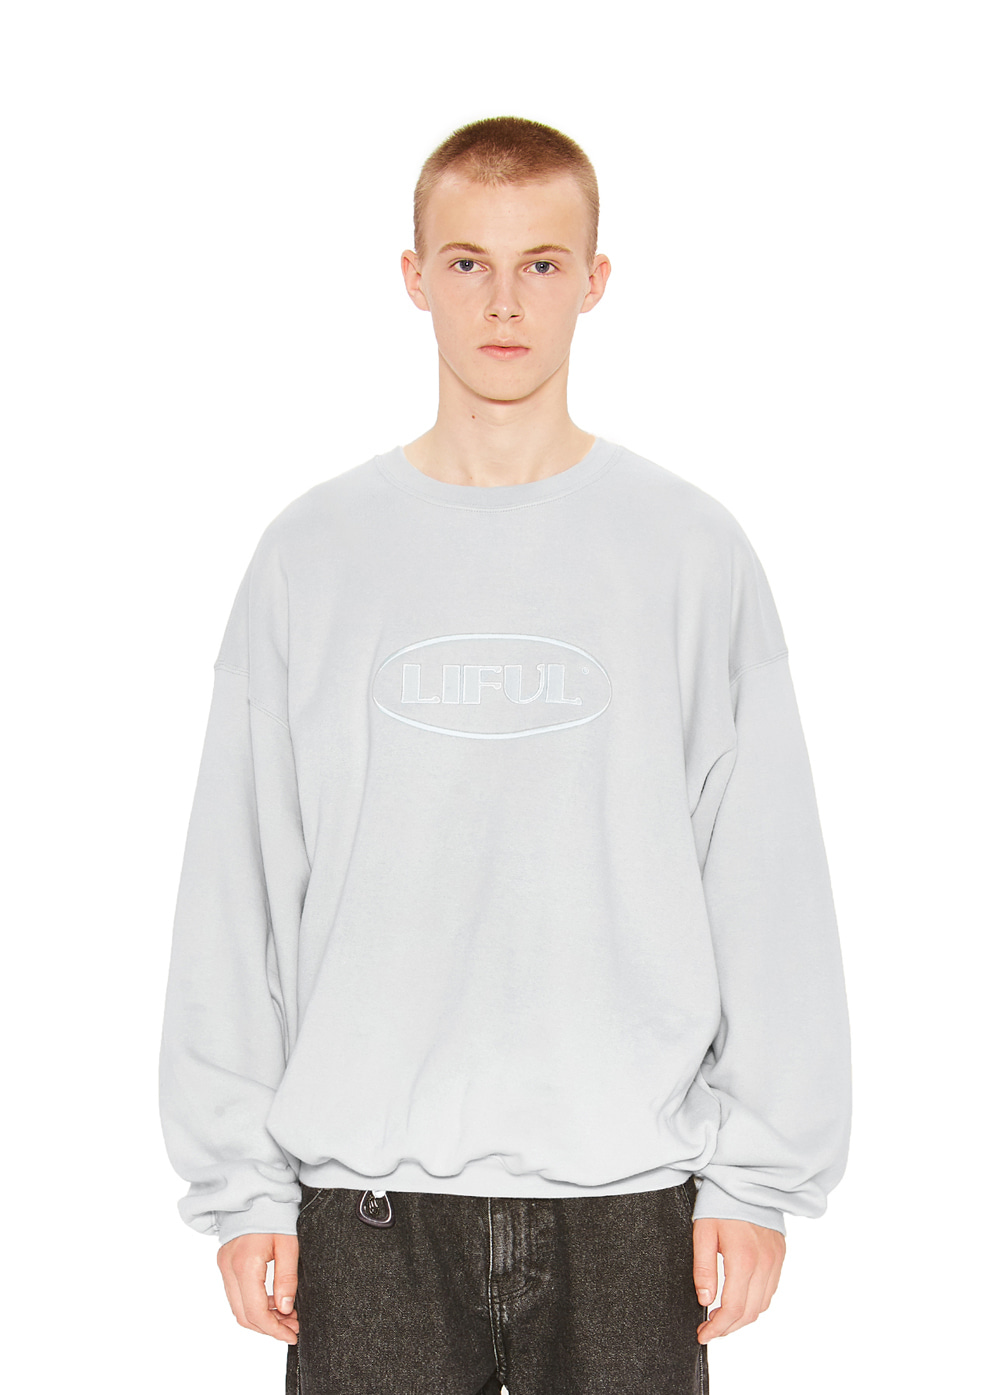 OVAL LOGO SWEATSHIRT gray